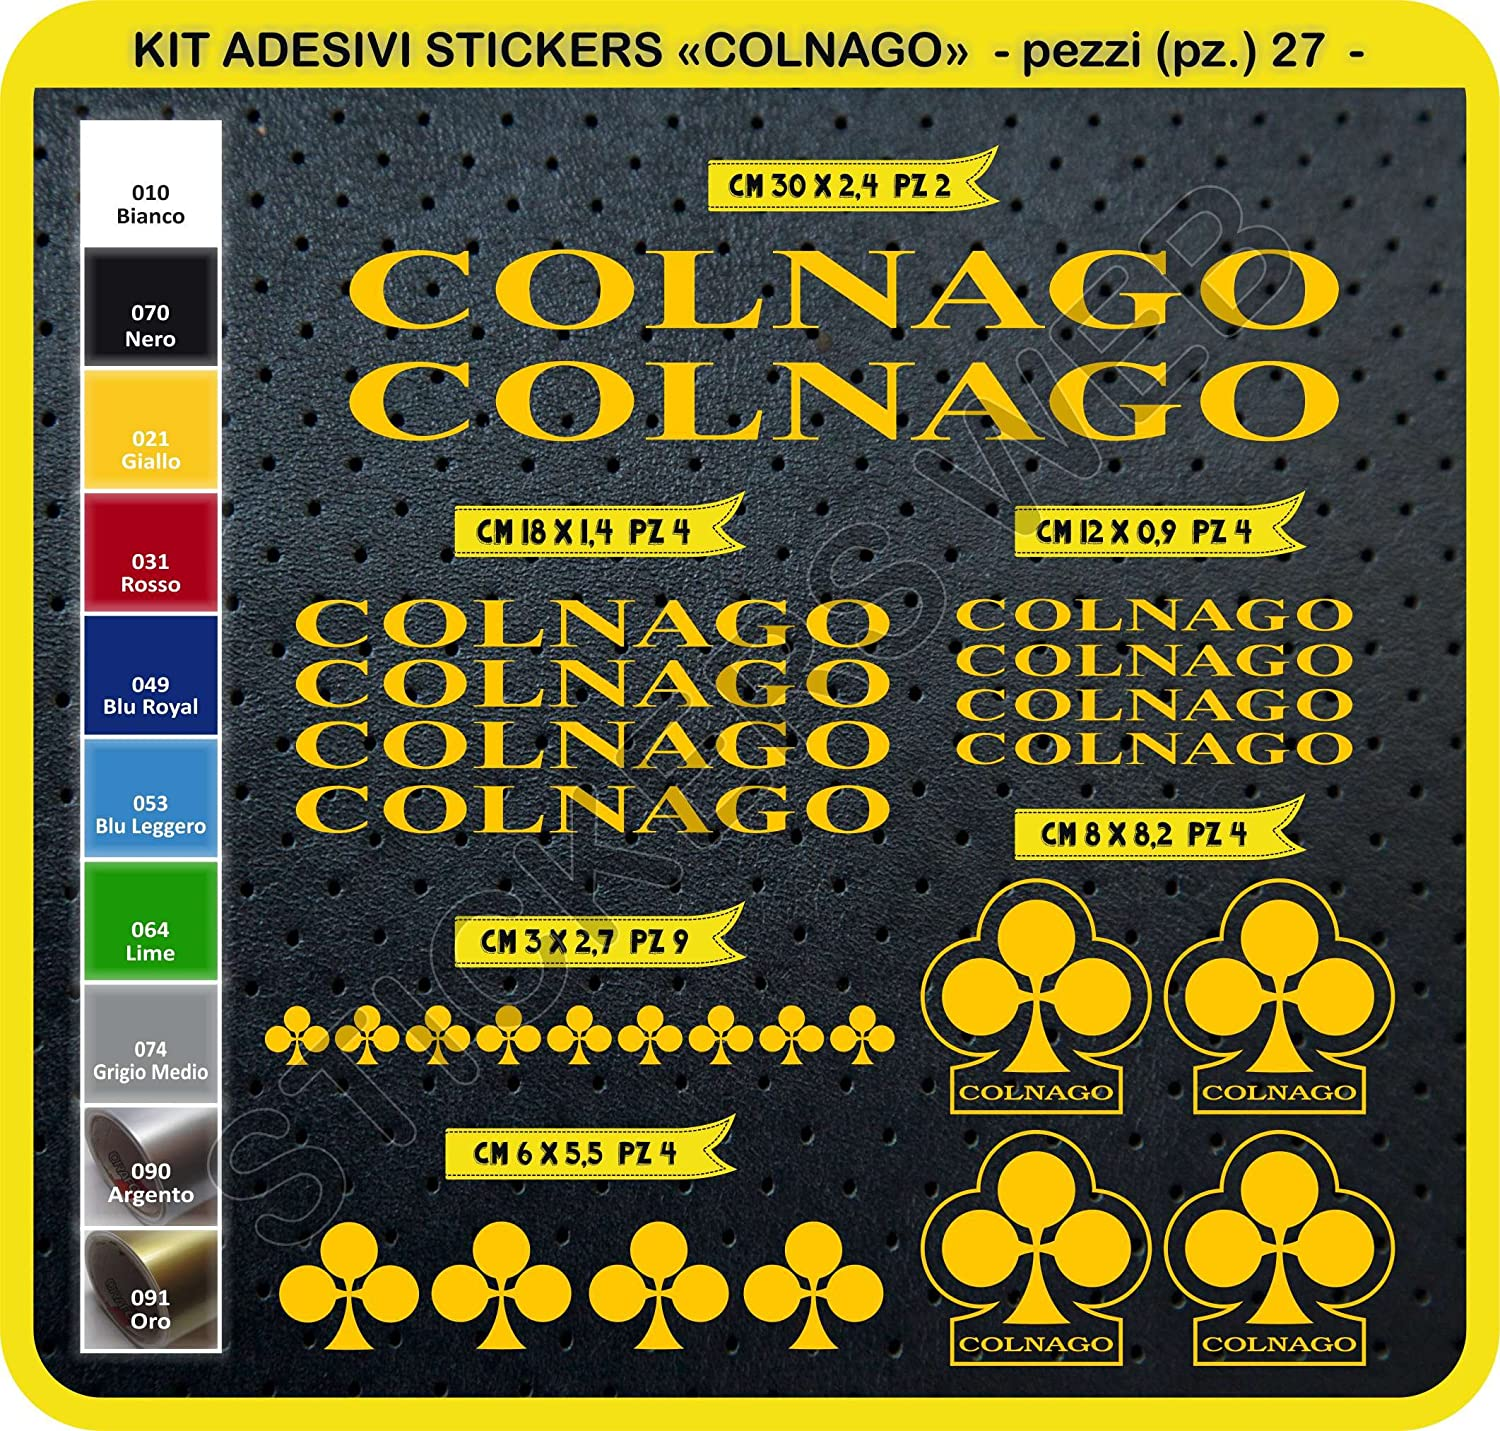 Bike Cycle Bike Stickers Pegatina Cod.0092 Colnago Kit Stickers Stickers 27/pieces/ /Choose immediately colore